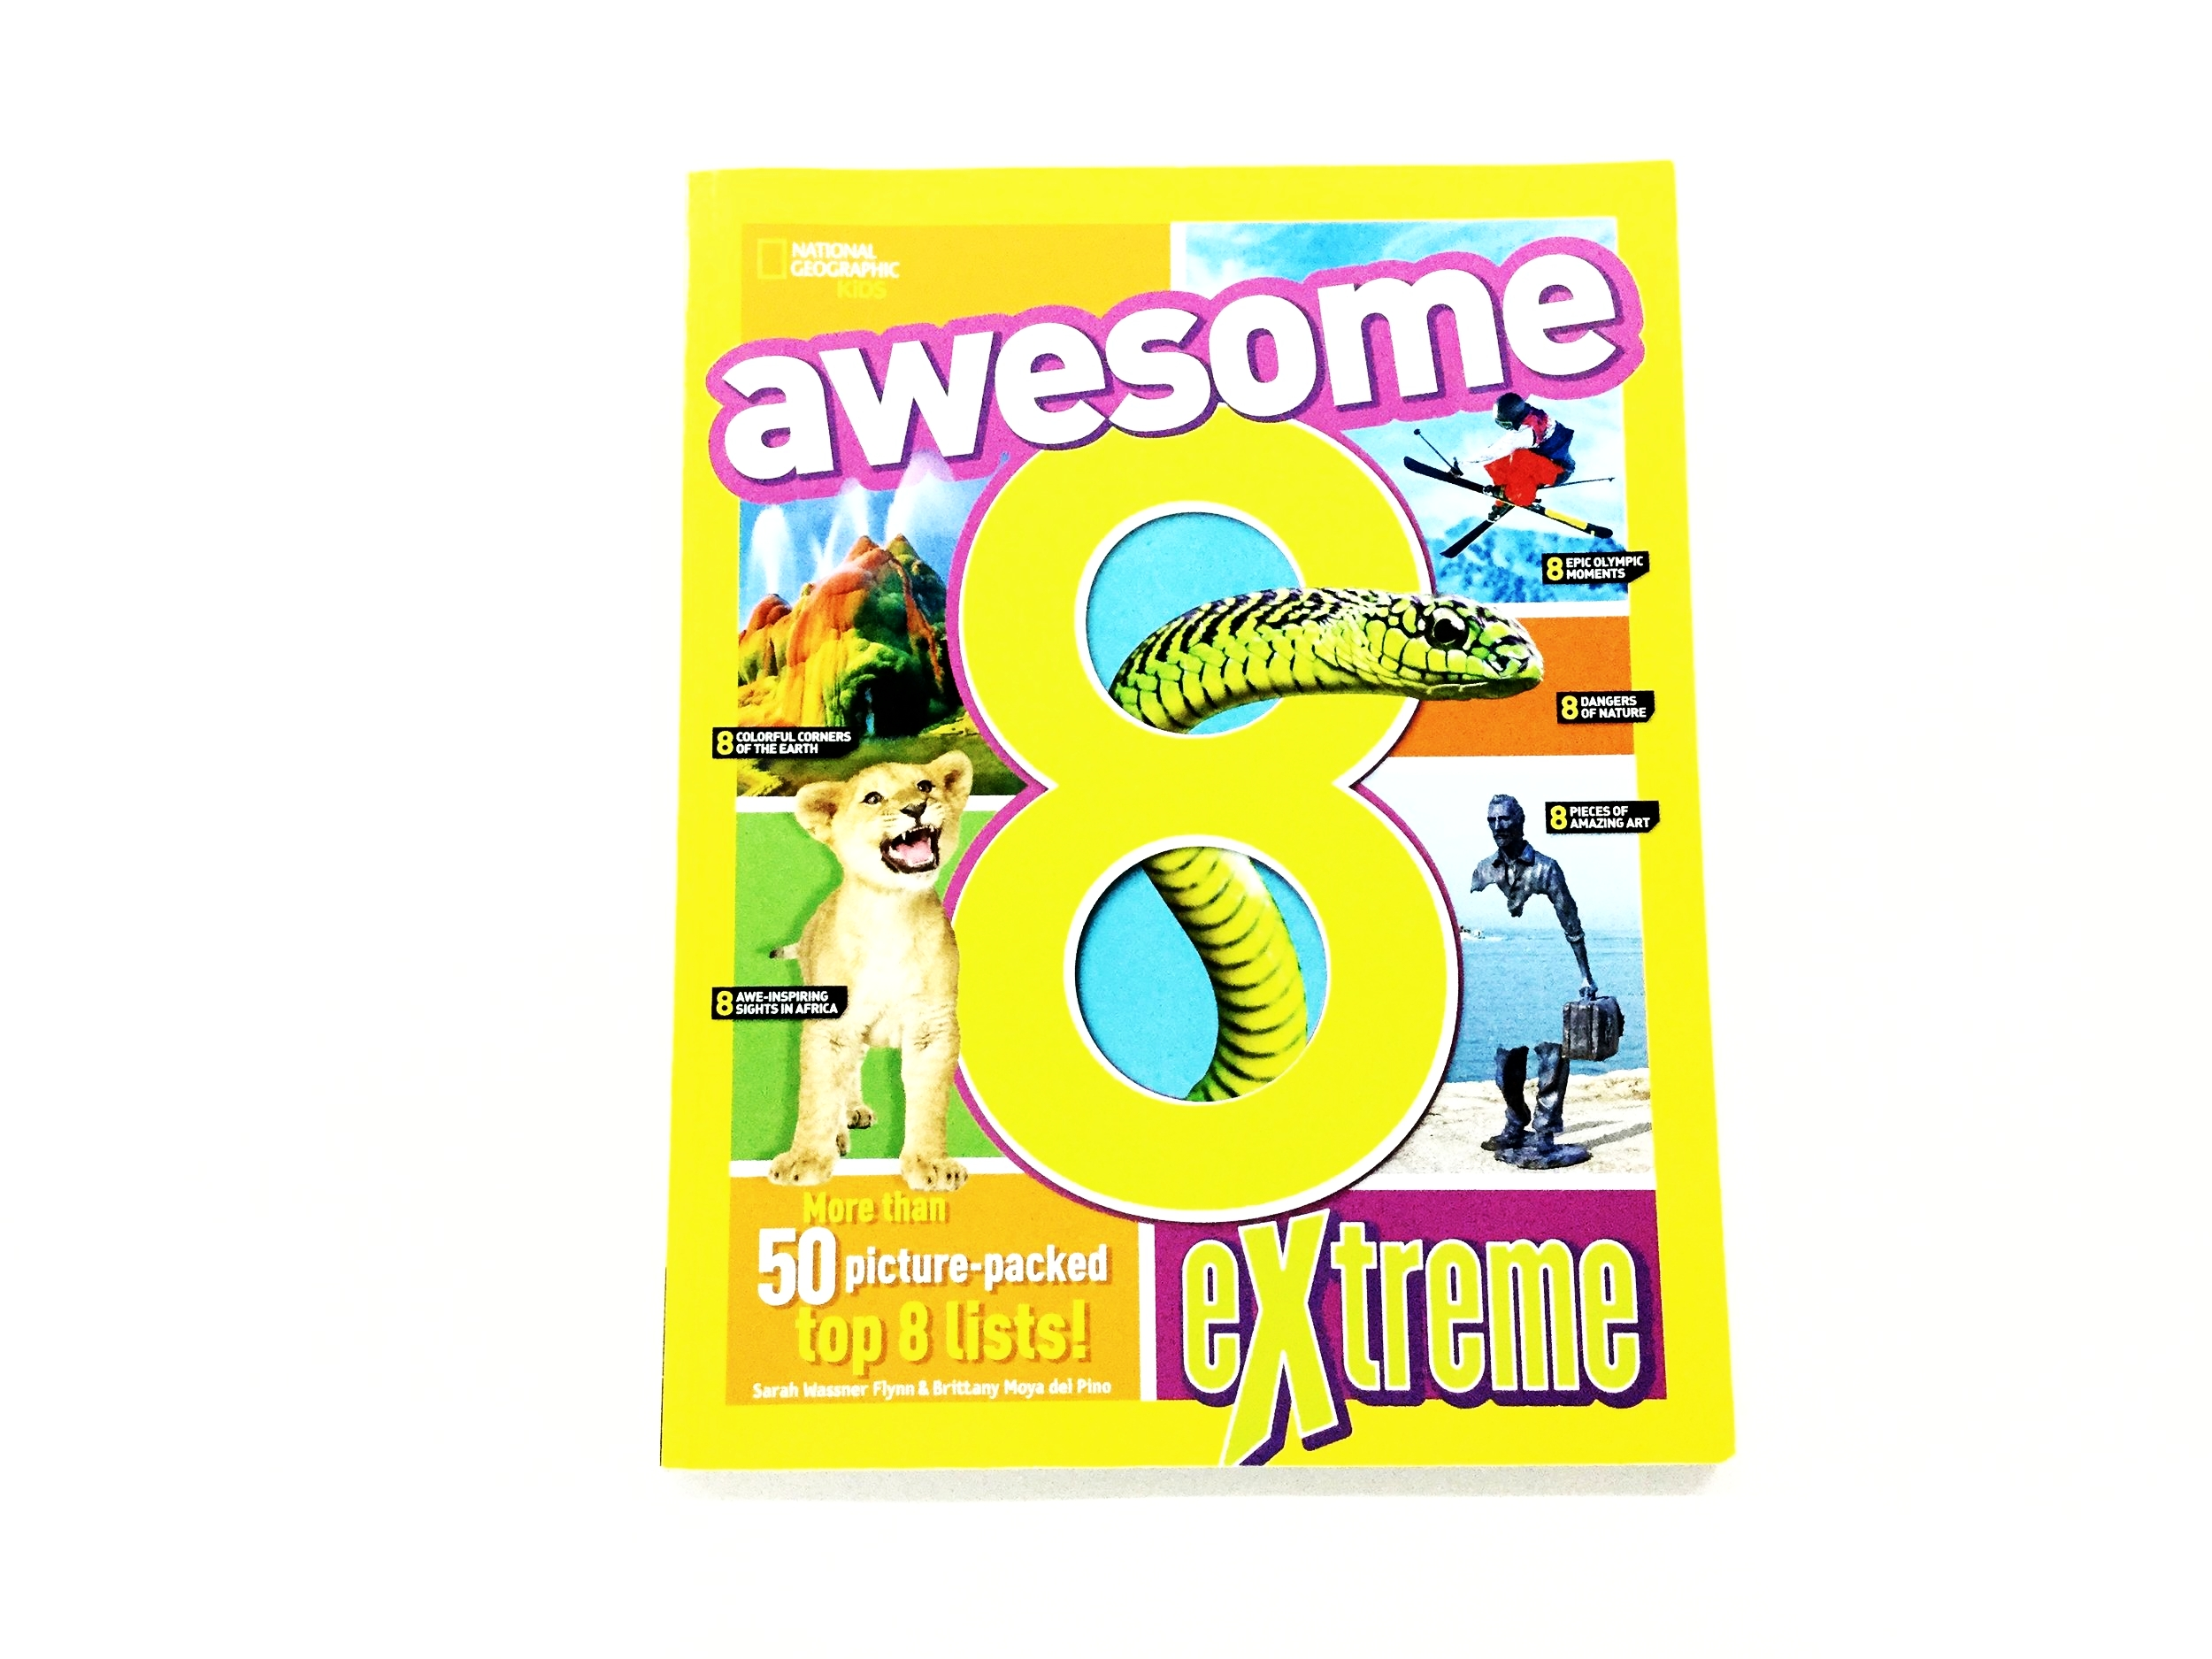 National Geographic Kids - Awesome 8 Extreme (Apr 2017 Cover)